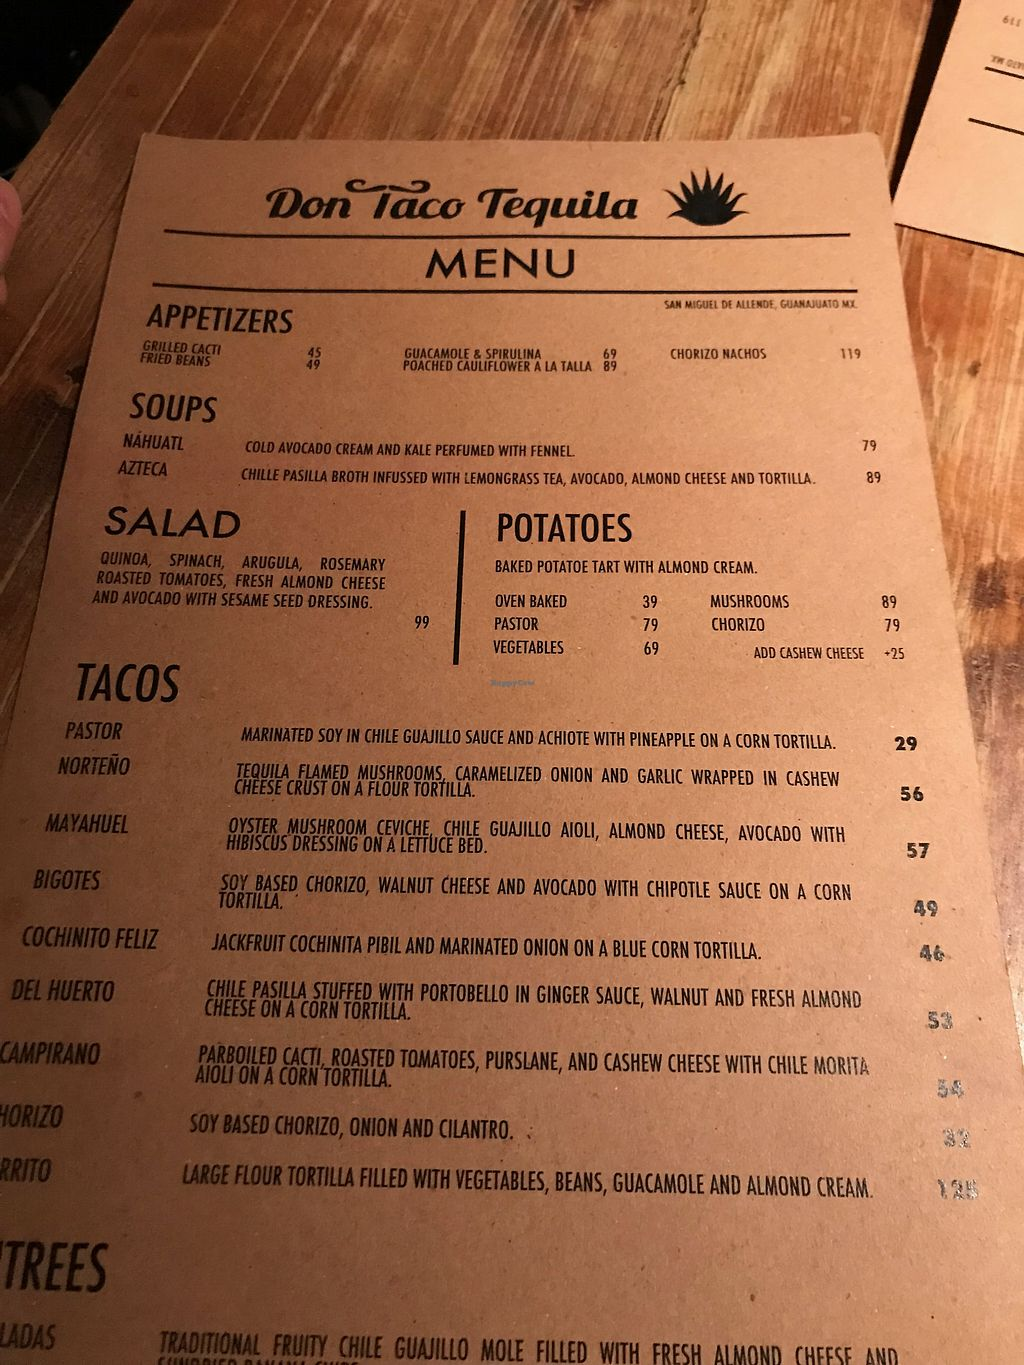 """Photo of Don Taco Tequila  by <a href=""""/members/profile/JosiahW"""">JosiahW</a> <br/>Menu <br/> April 3, 2018  - <a href='/contact/abuse/image/88272/380403'>Report</a>"""